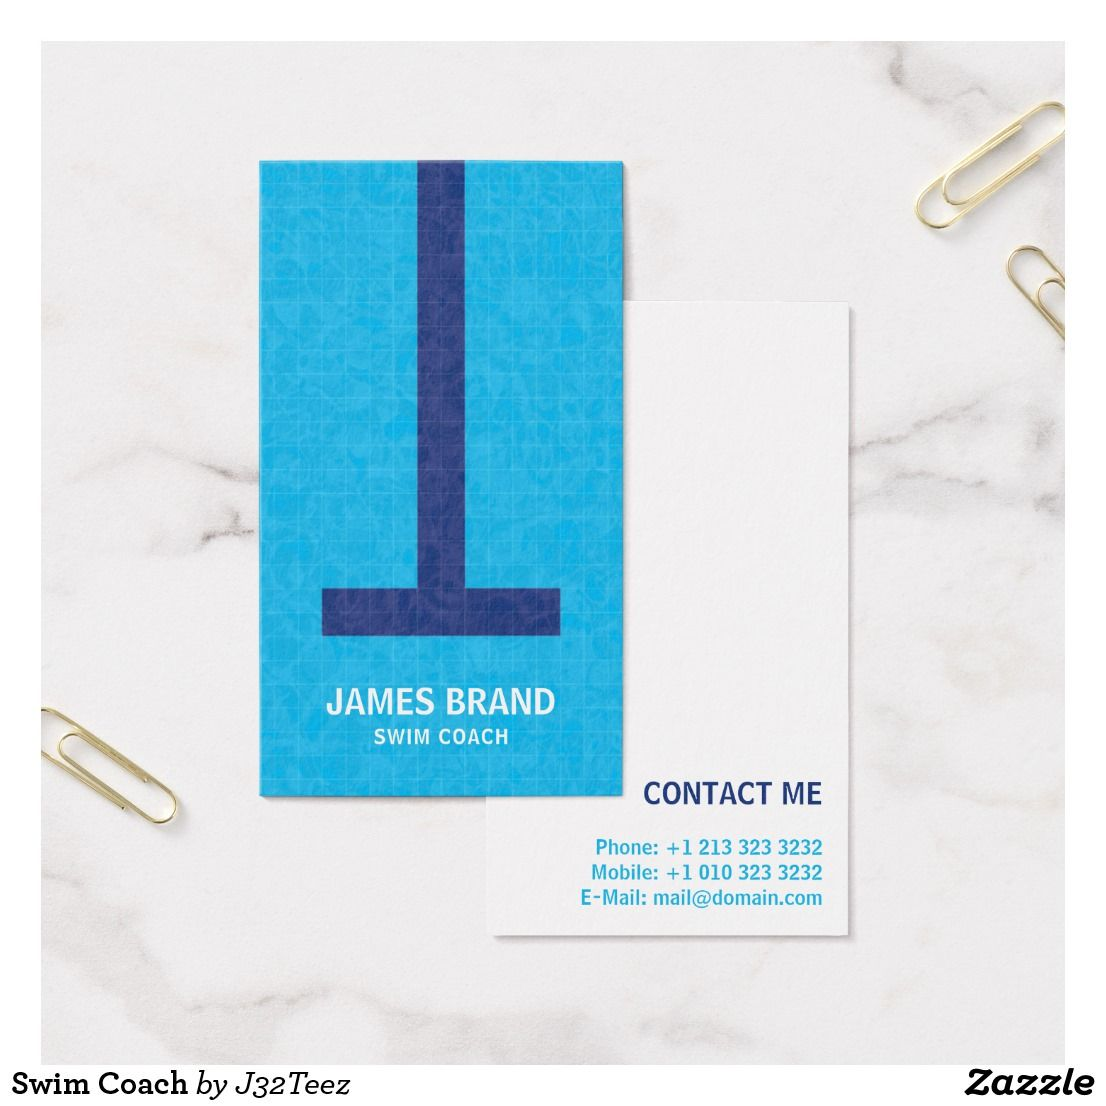 Swim Coach Business Card   Business cards, Business and Card templates